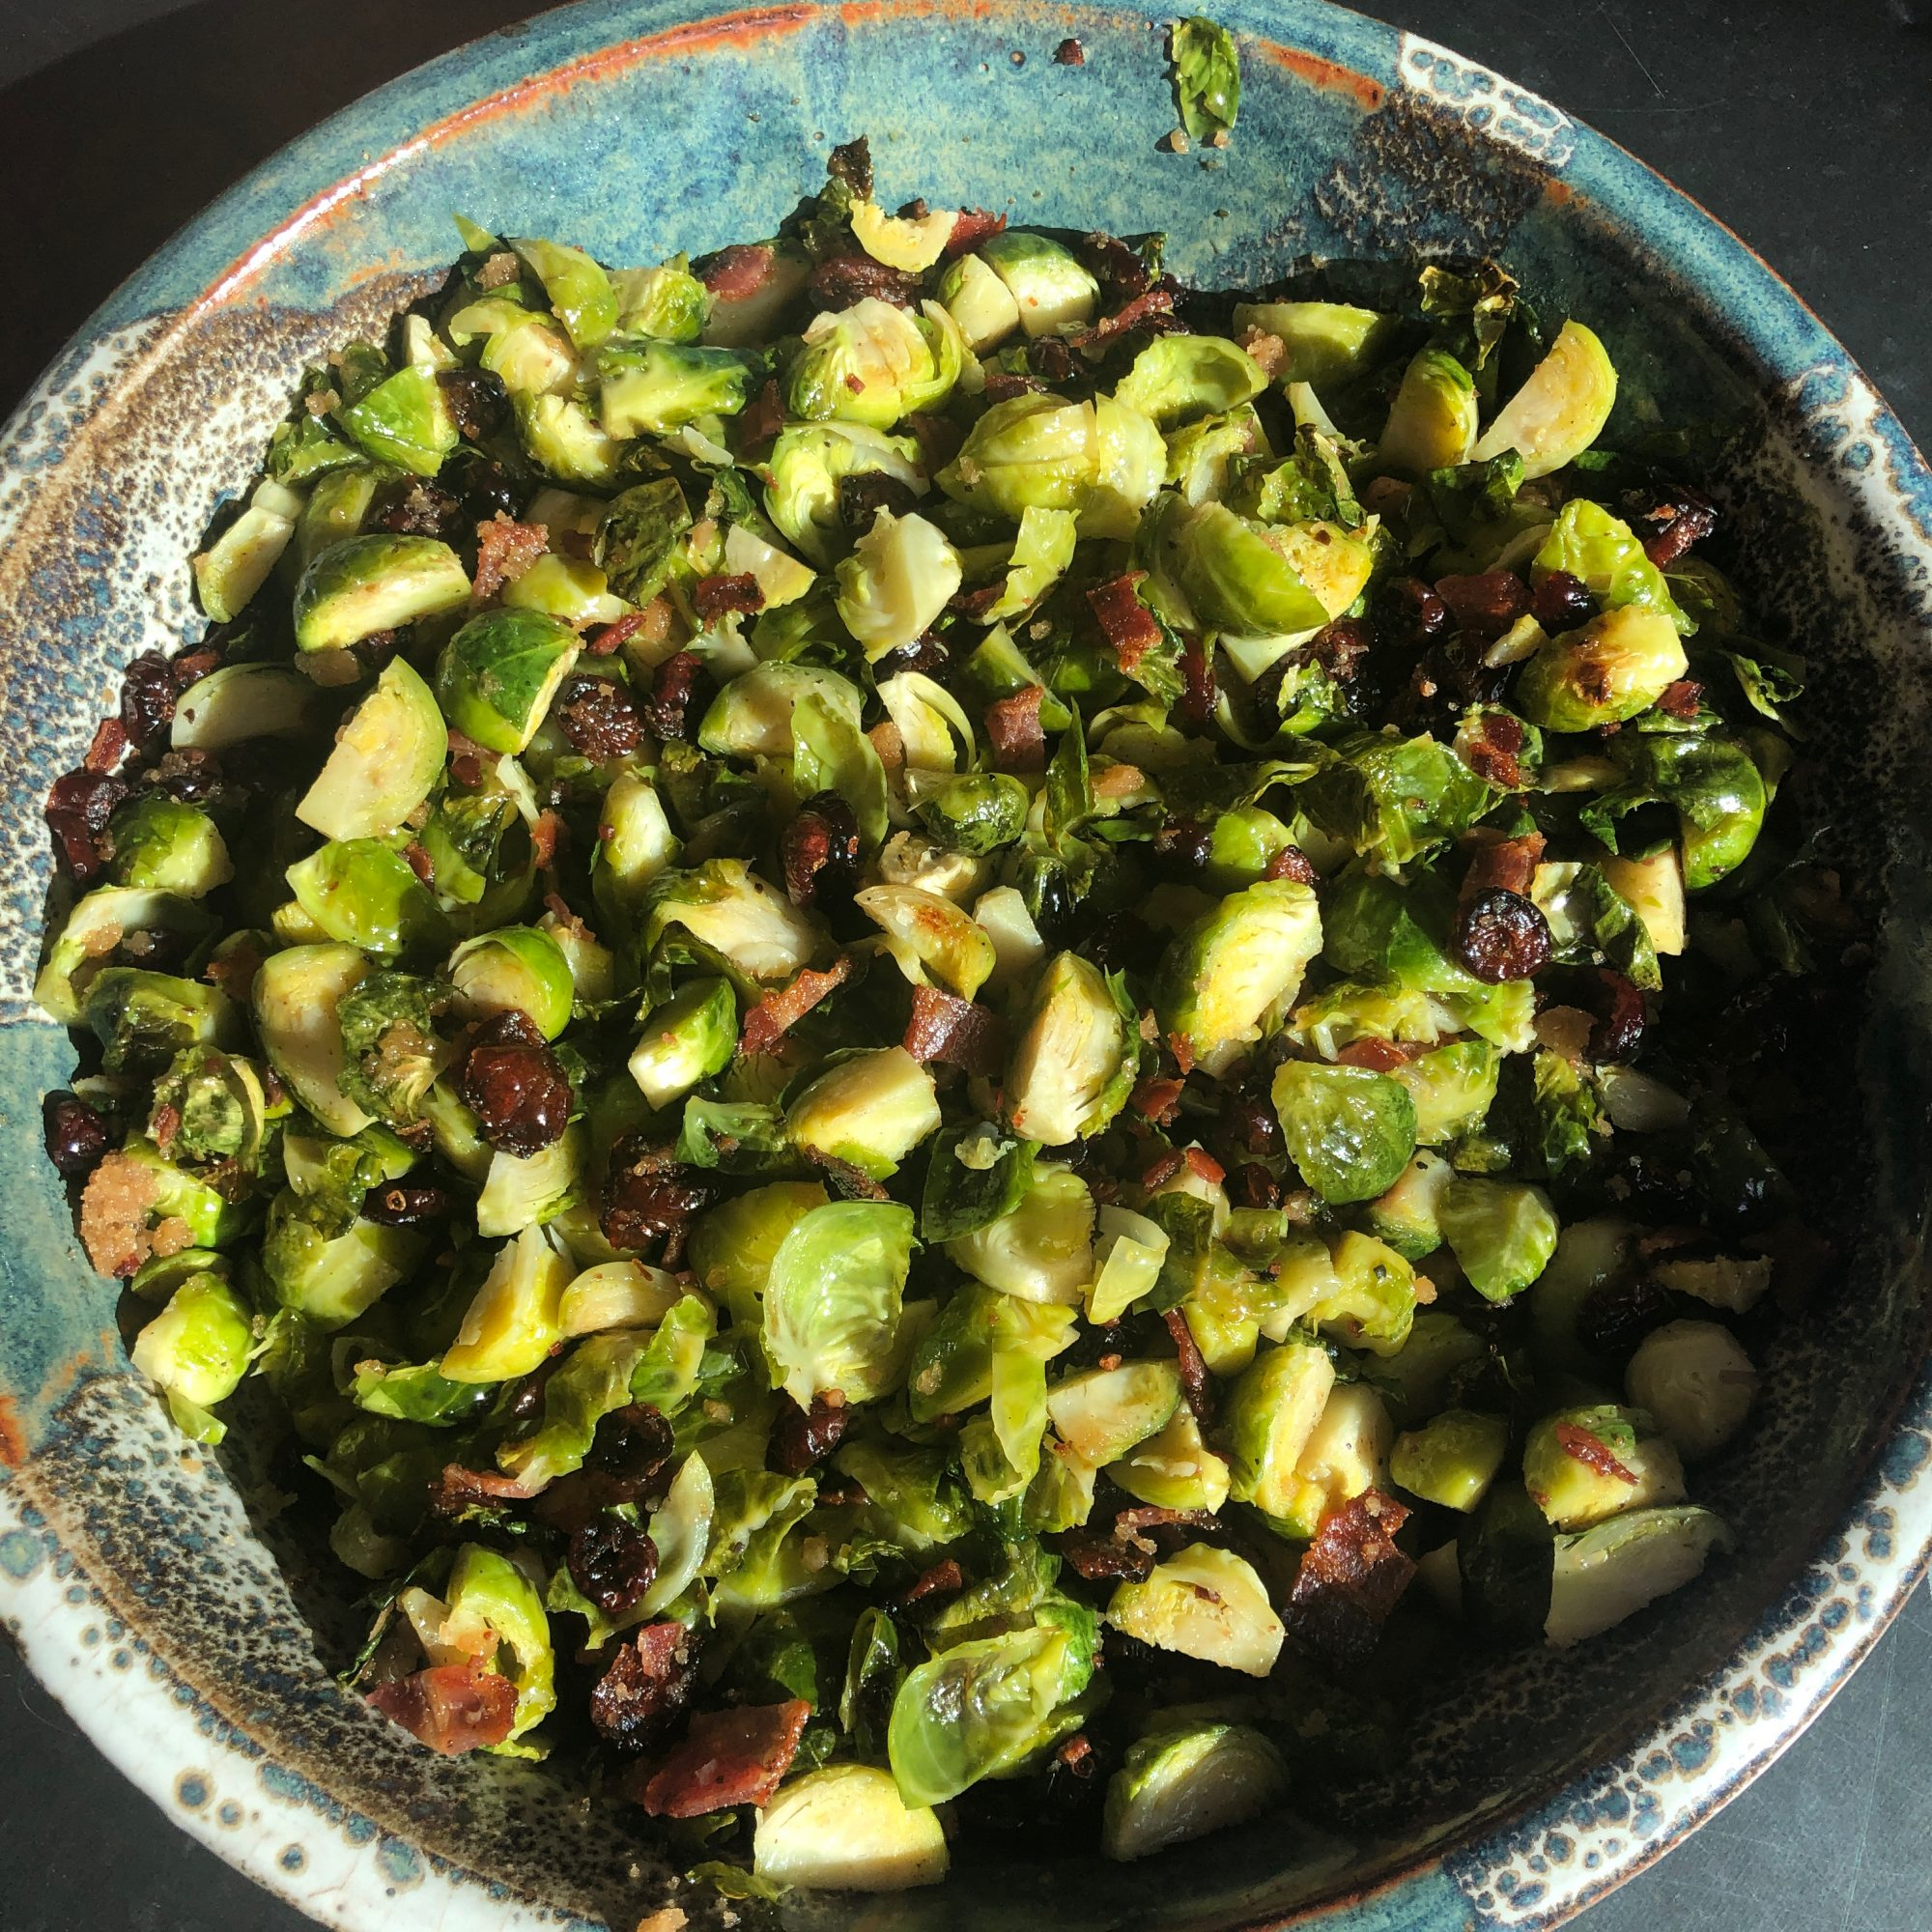 Roasted Brussels Sprouts with Cranberries in a turquoise serving bowl